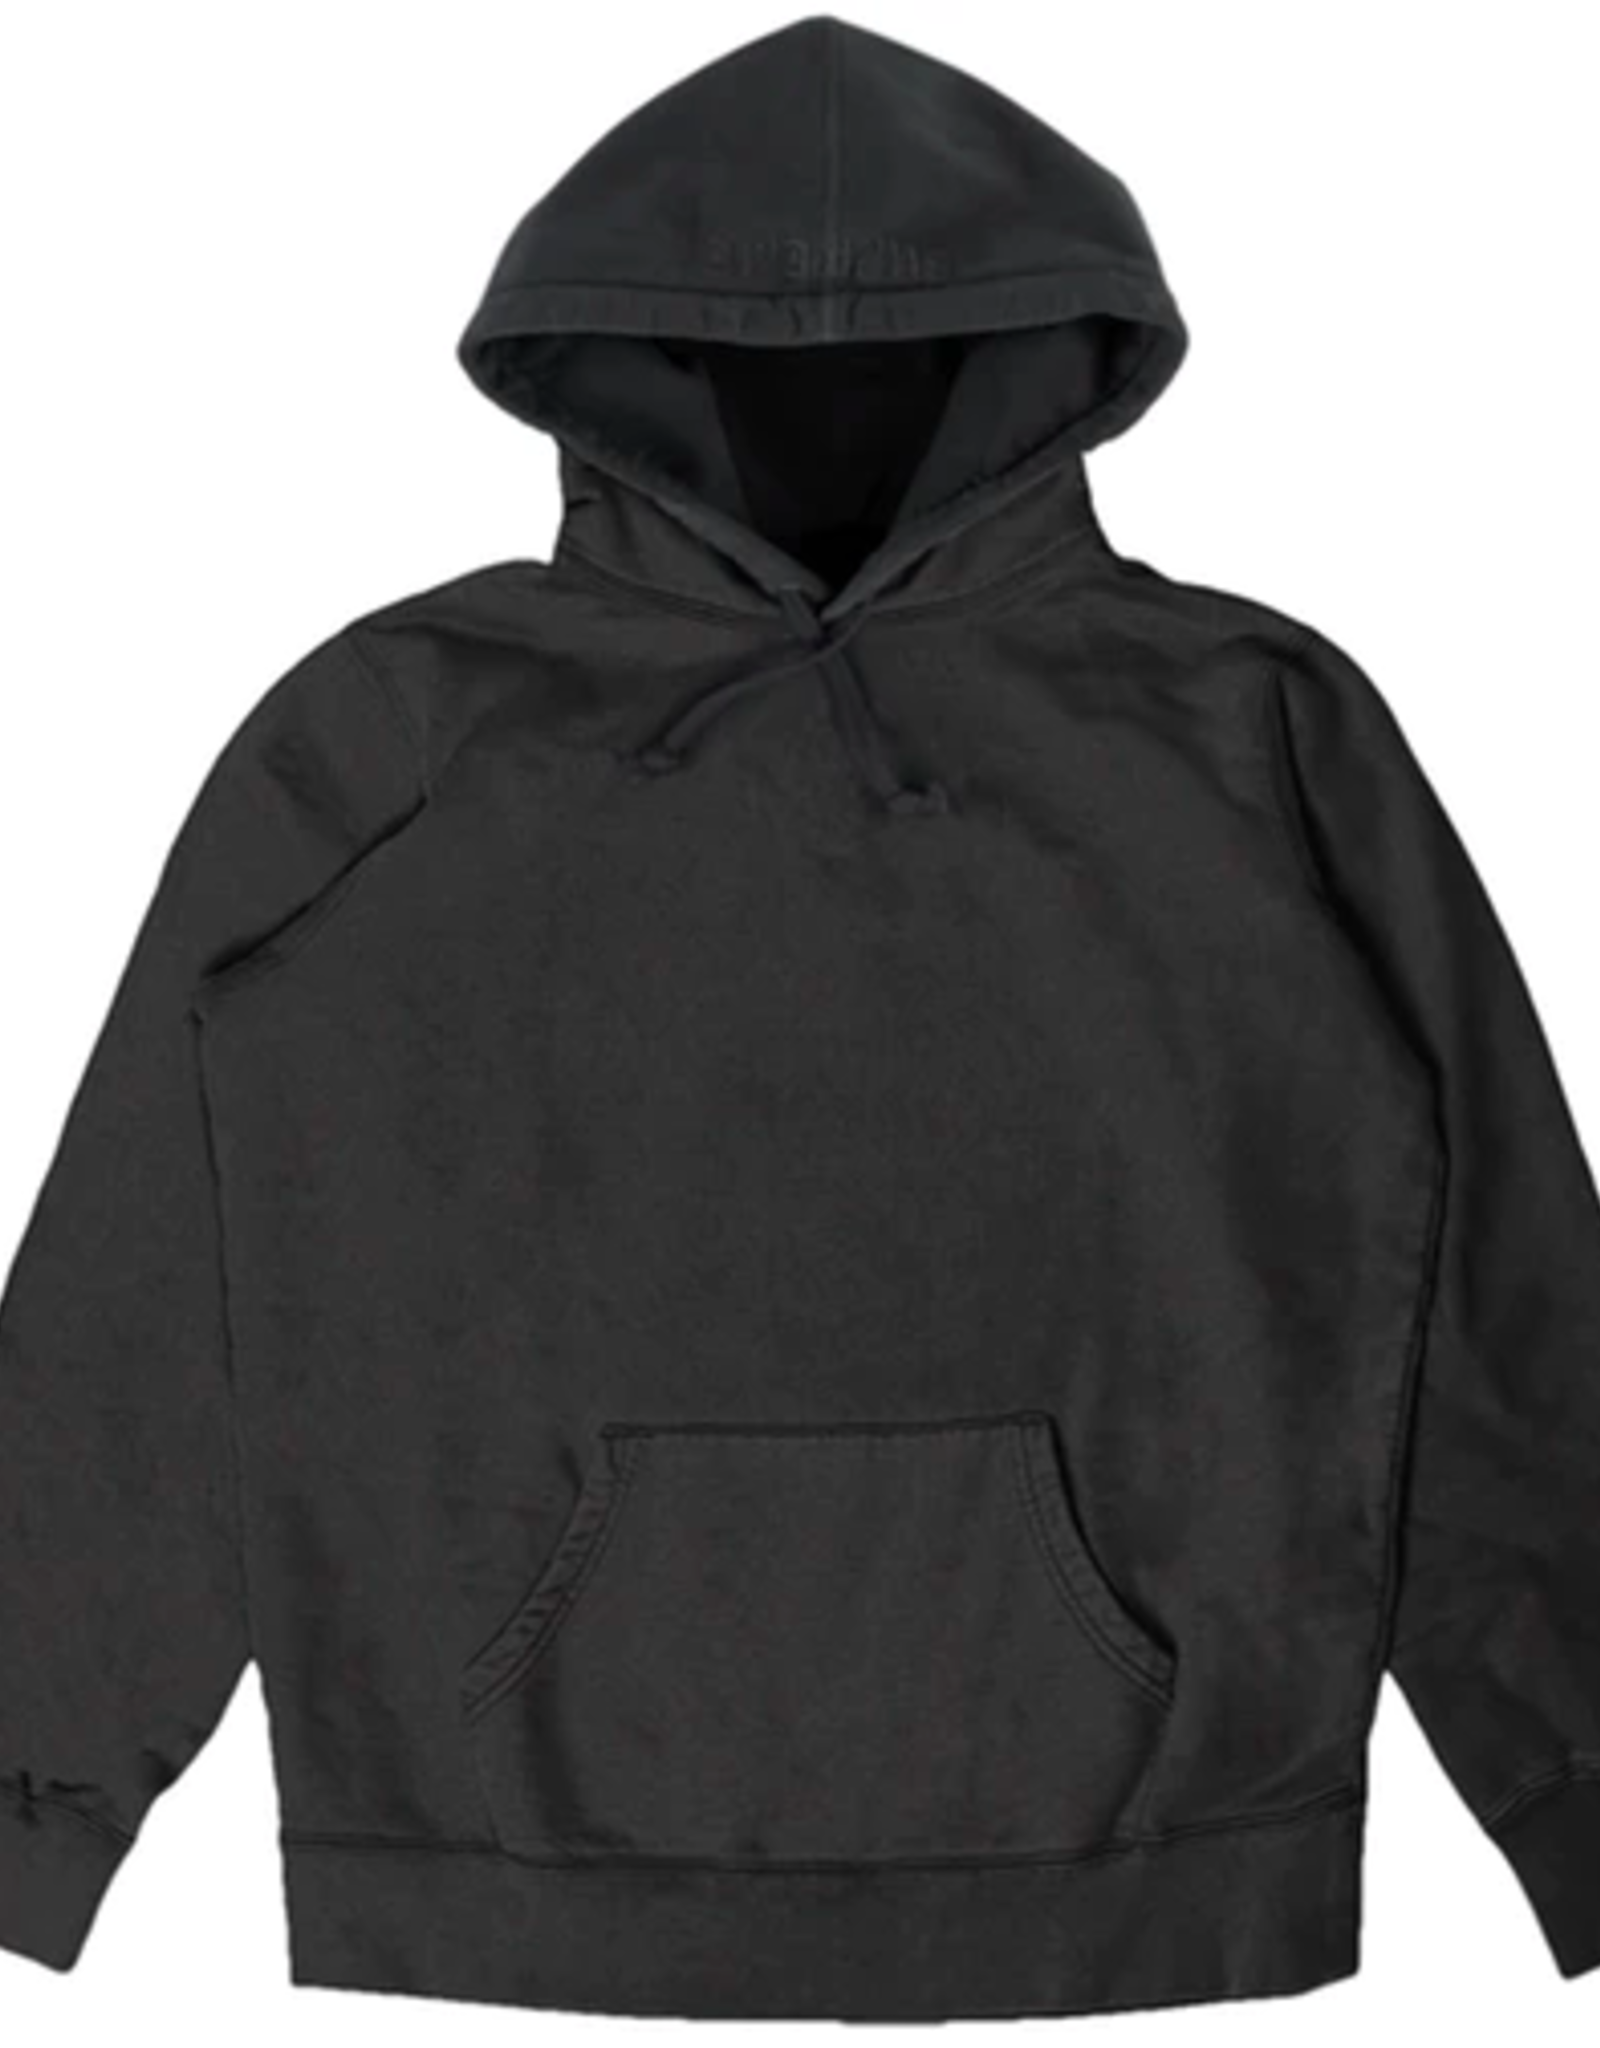 SUPREME SUPREME OVERDYED HOODED SWEATSHIRT-LARGE